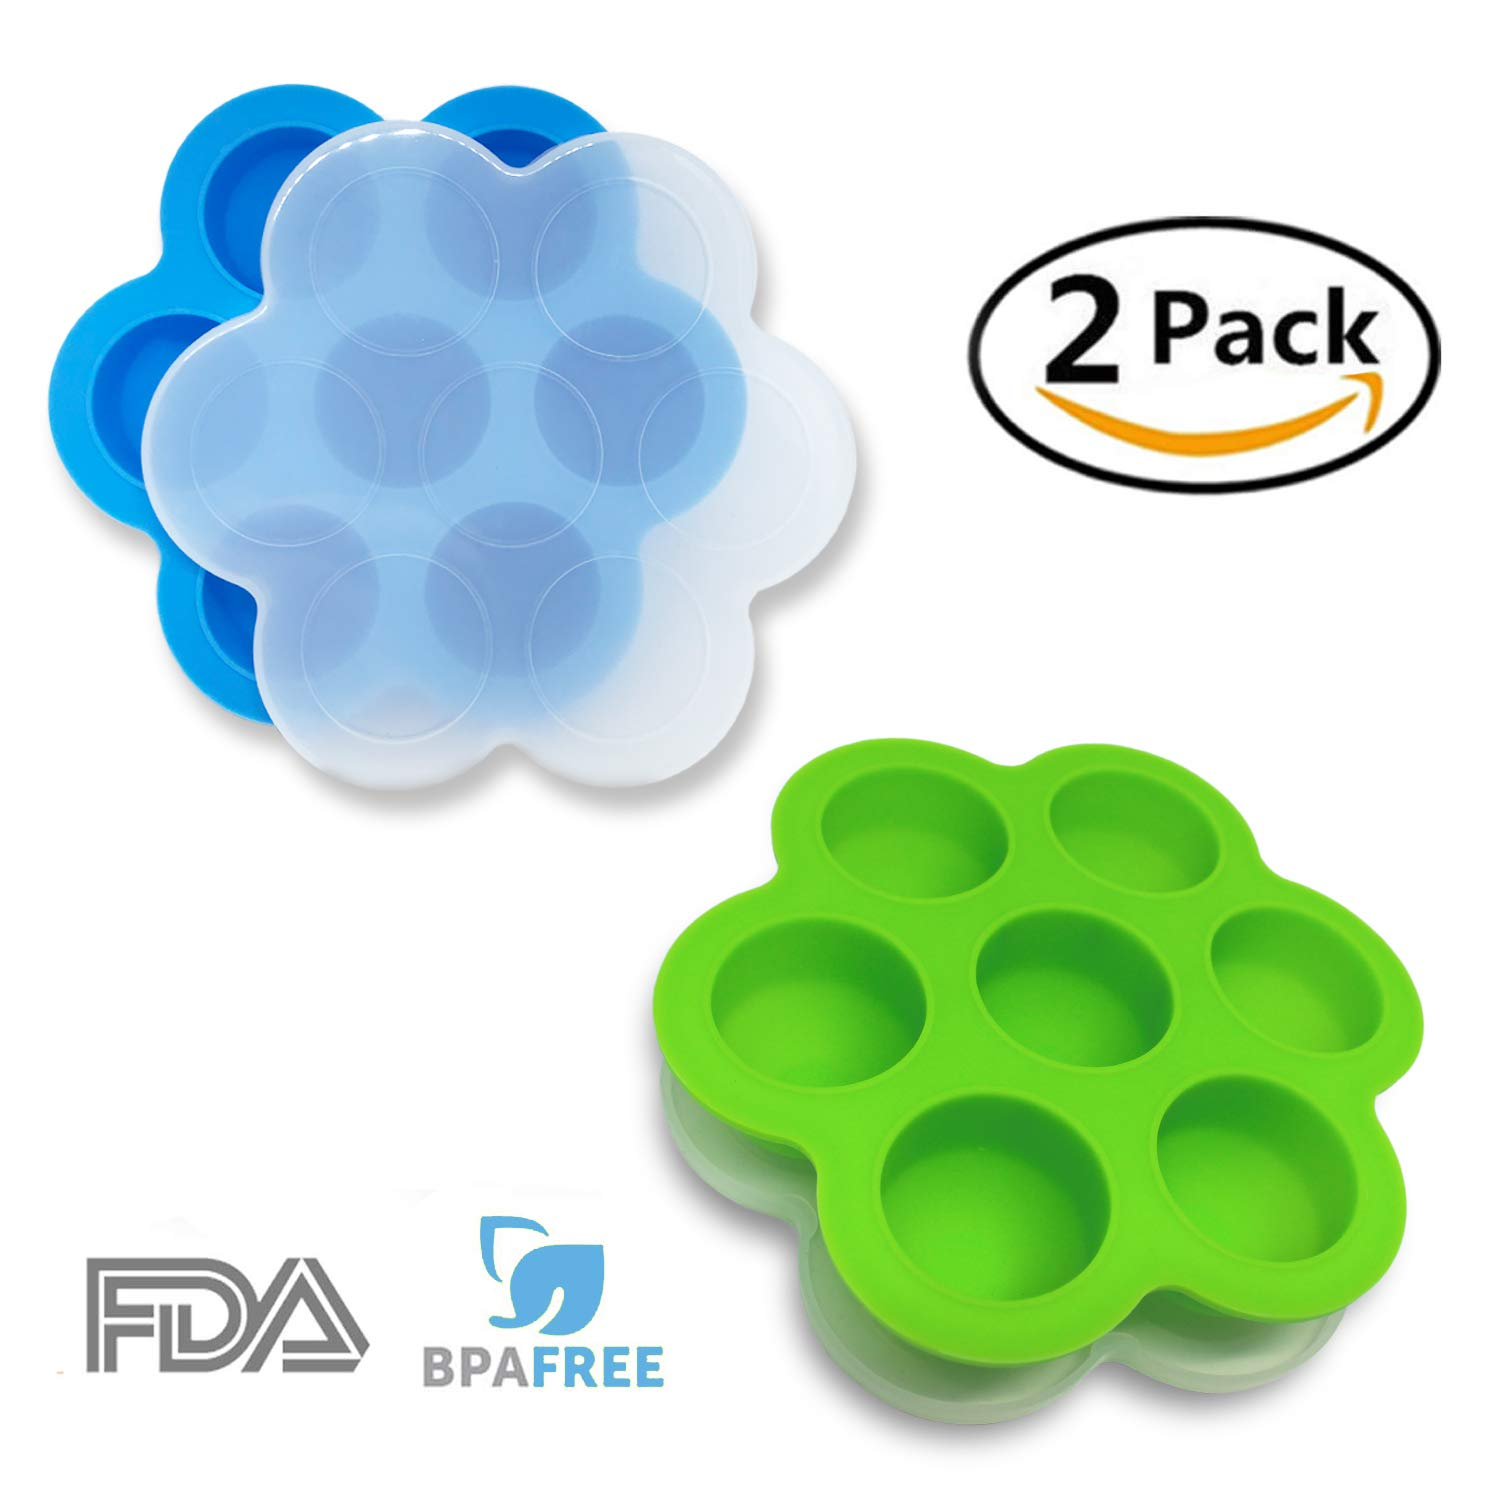 OGGO Silicone Egg Bites Molds For Instant Pot Accessories - Fit Instant Pot 5,6,8 qt Pressure Cooker - Baby Food Freezer Tray with Lid - Reusable Storage Container - 2 Pack